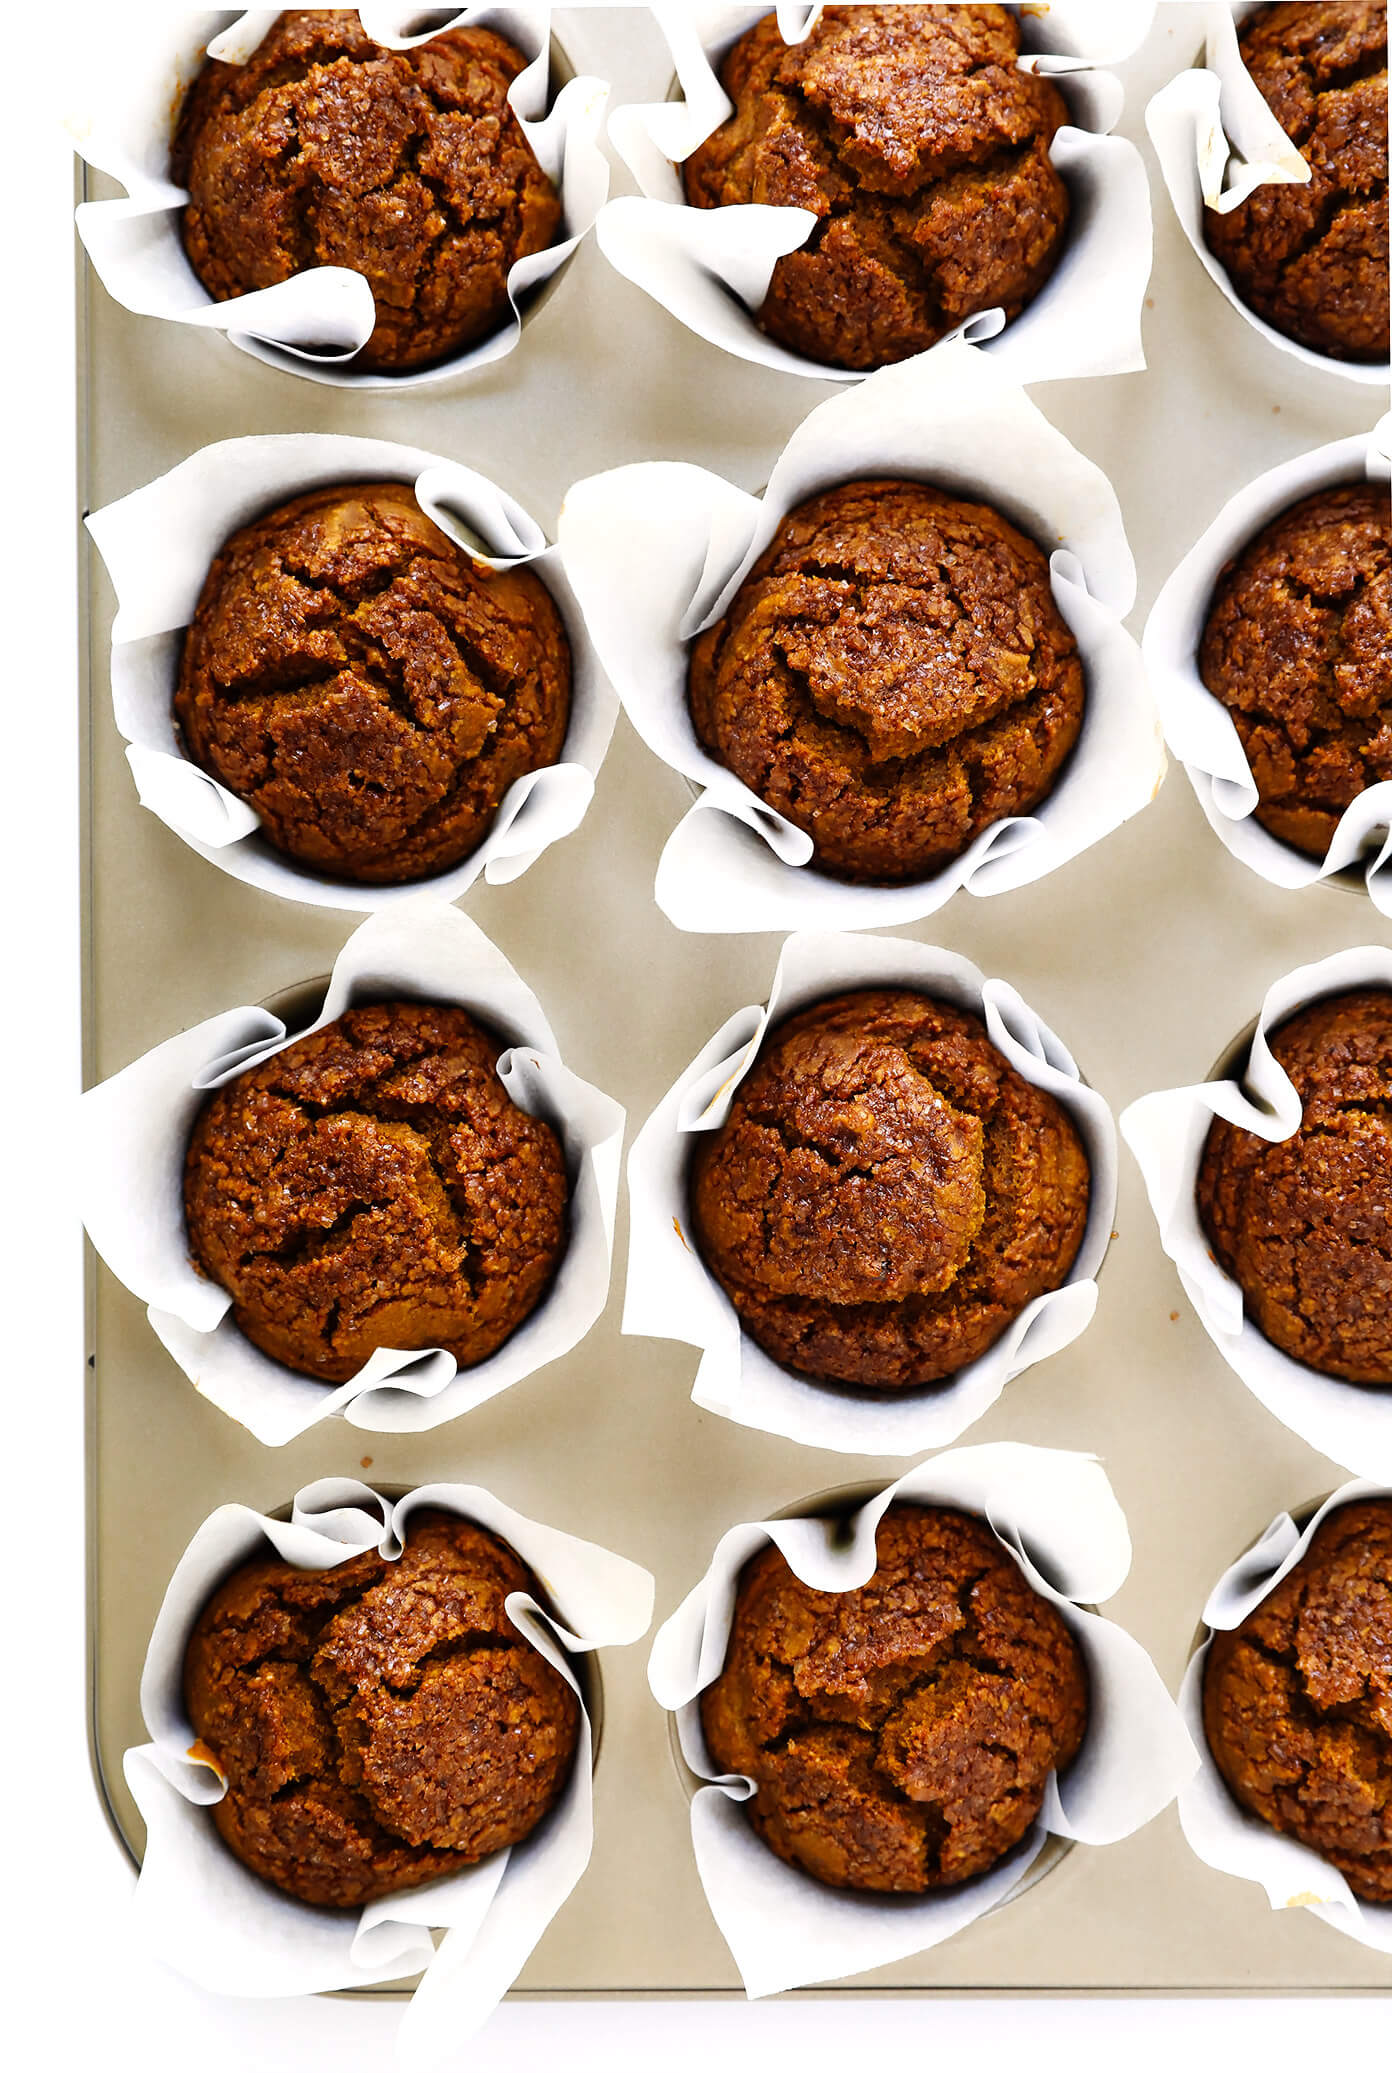 Healthy Pumpkin Muffins Recipe (Gluten-Free)